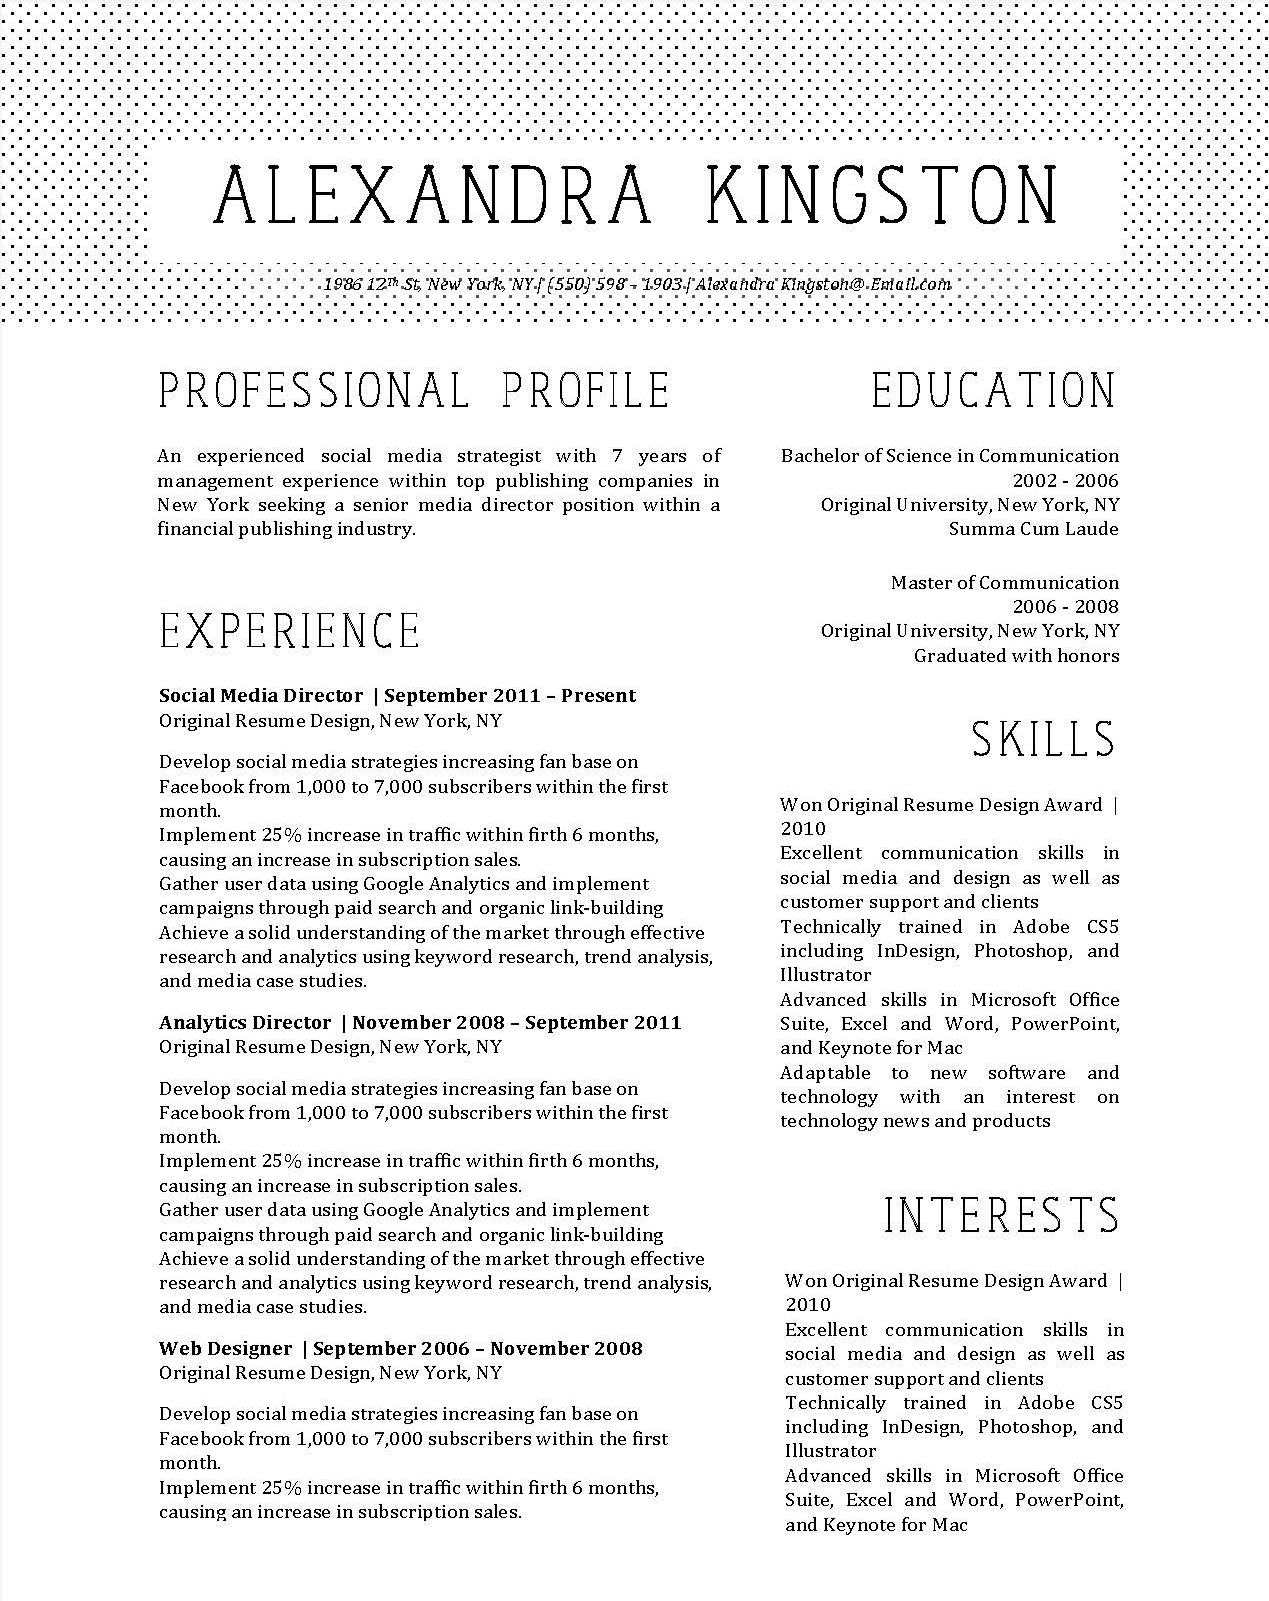 Alexandra Kingston -5 FREE MICROSOFT WORD CV RESUME TEMPLATES